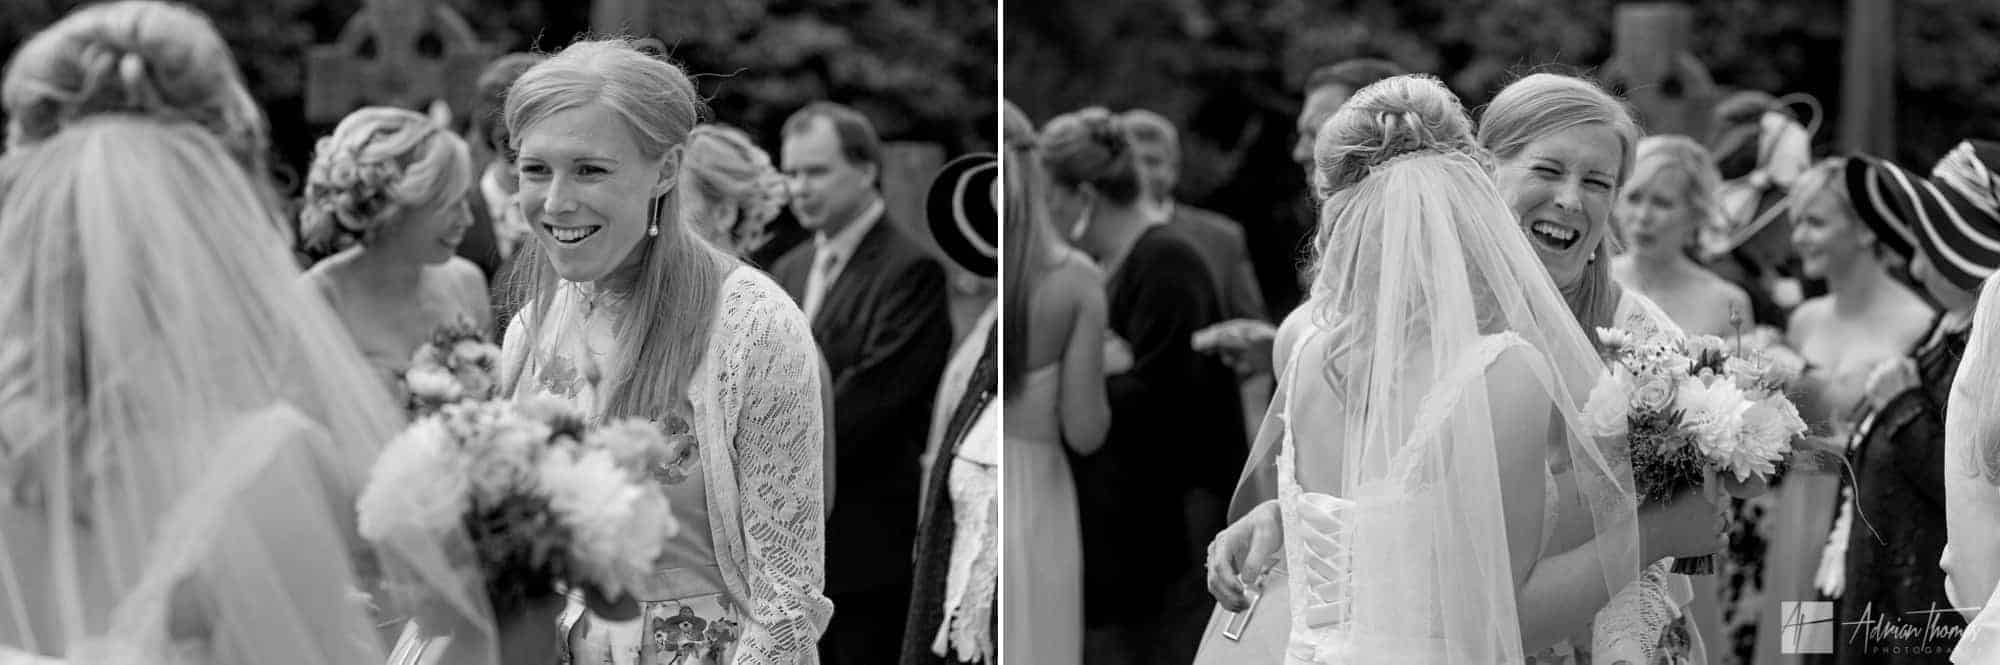 Bride greeting guests outside church.